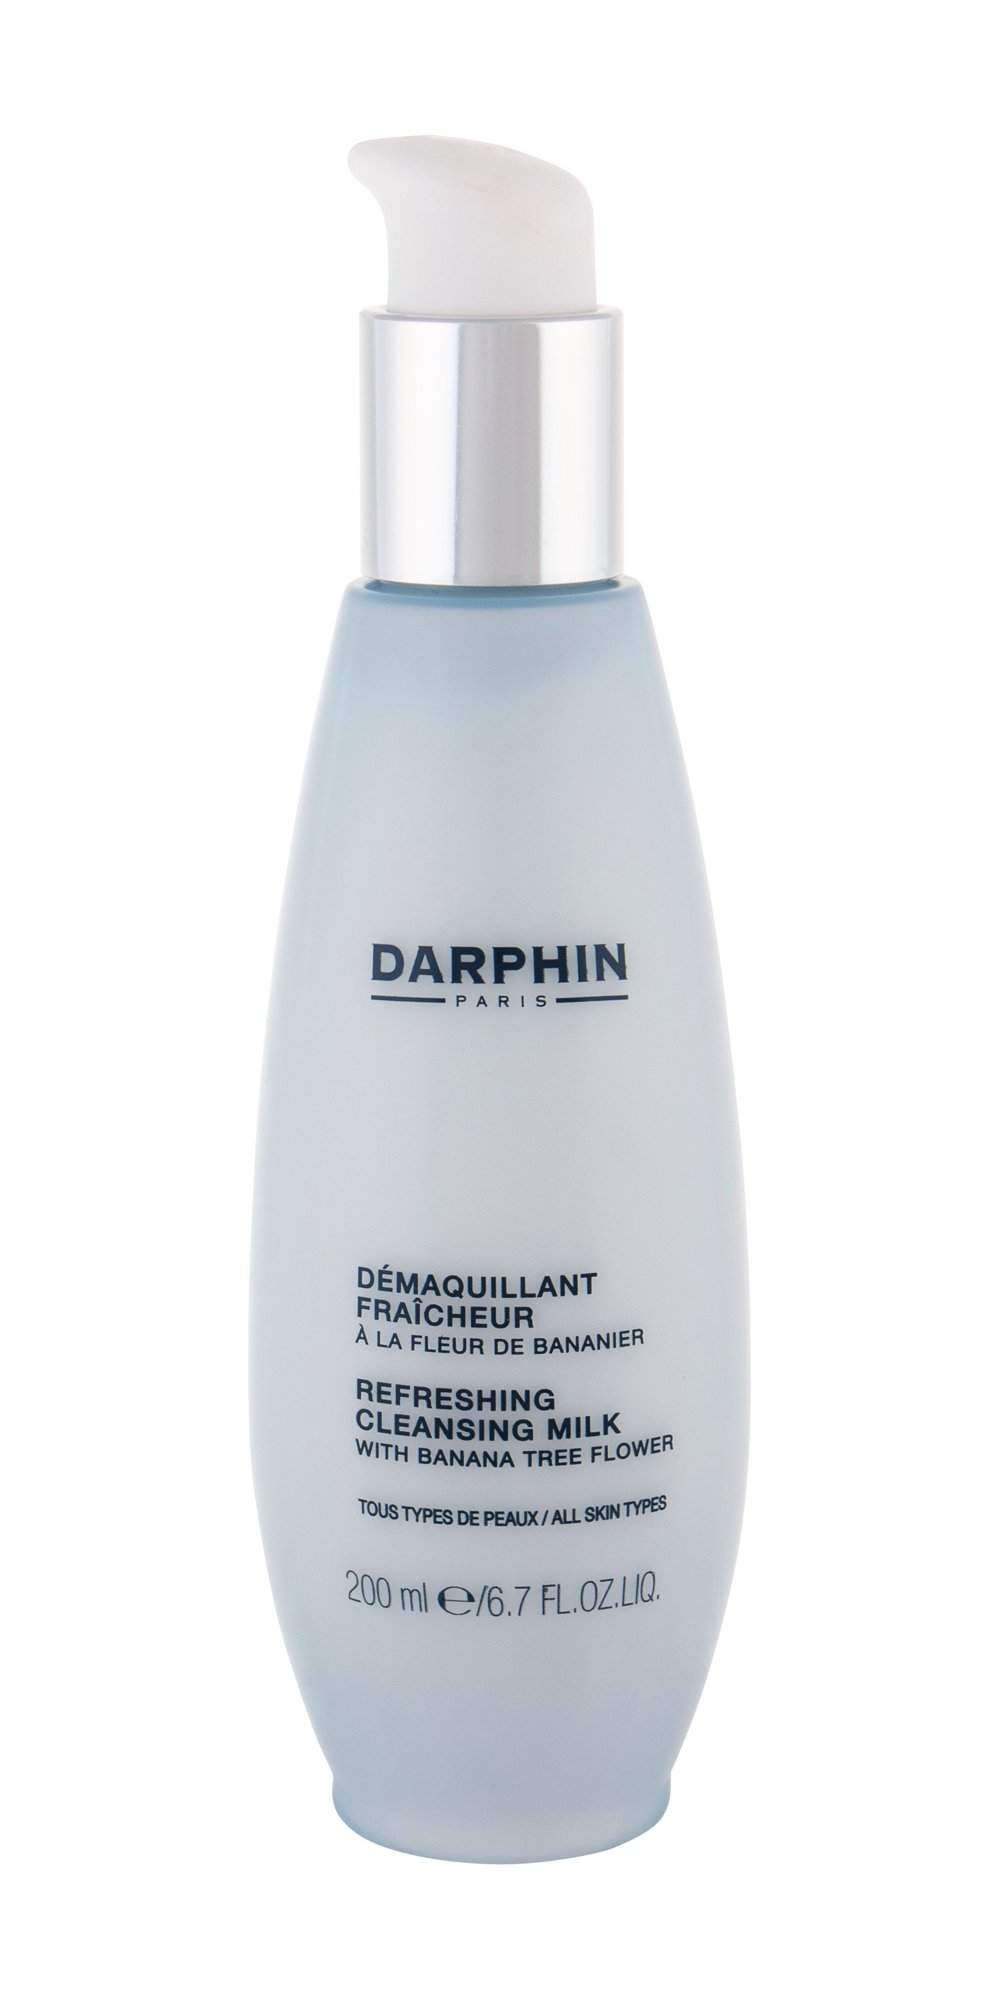 Darphin Cleansers Cleansing Milk 200ml  Refreshing Cleansing Milk